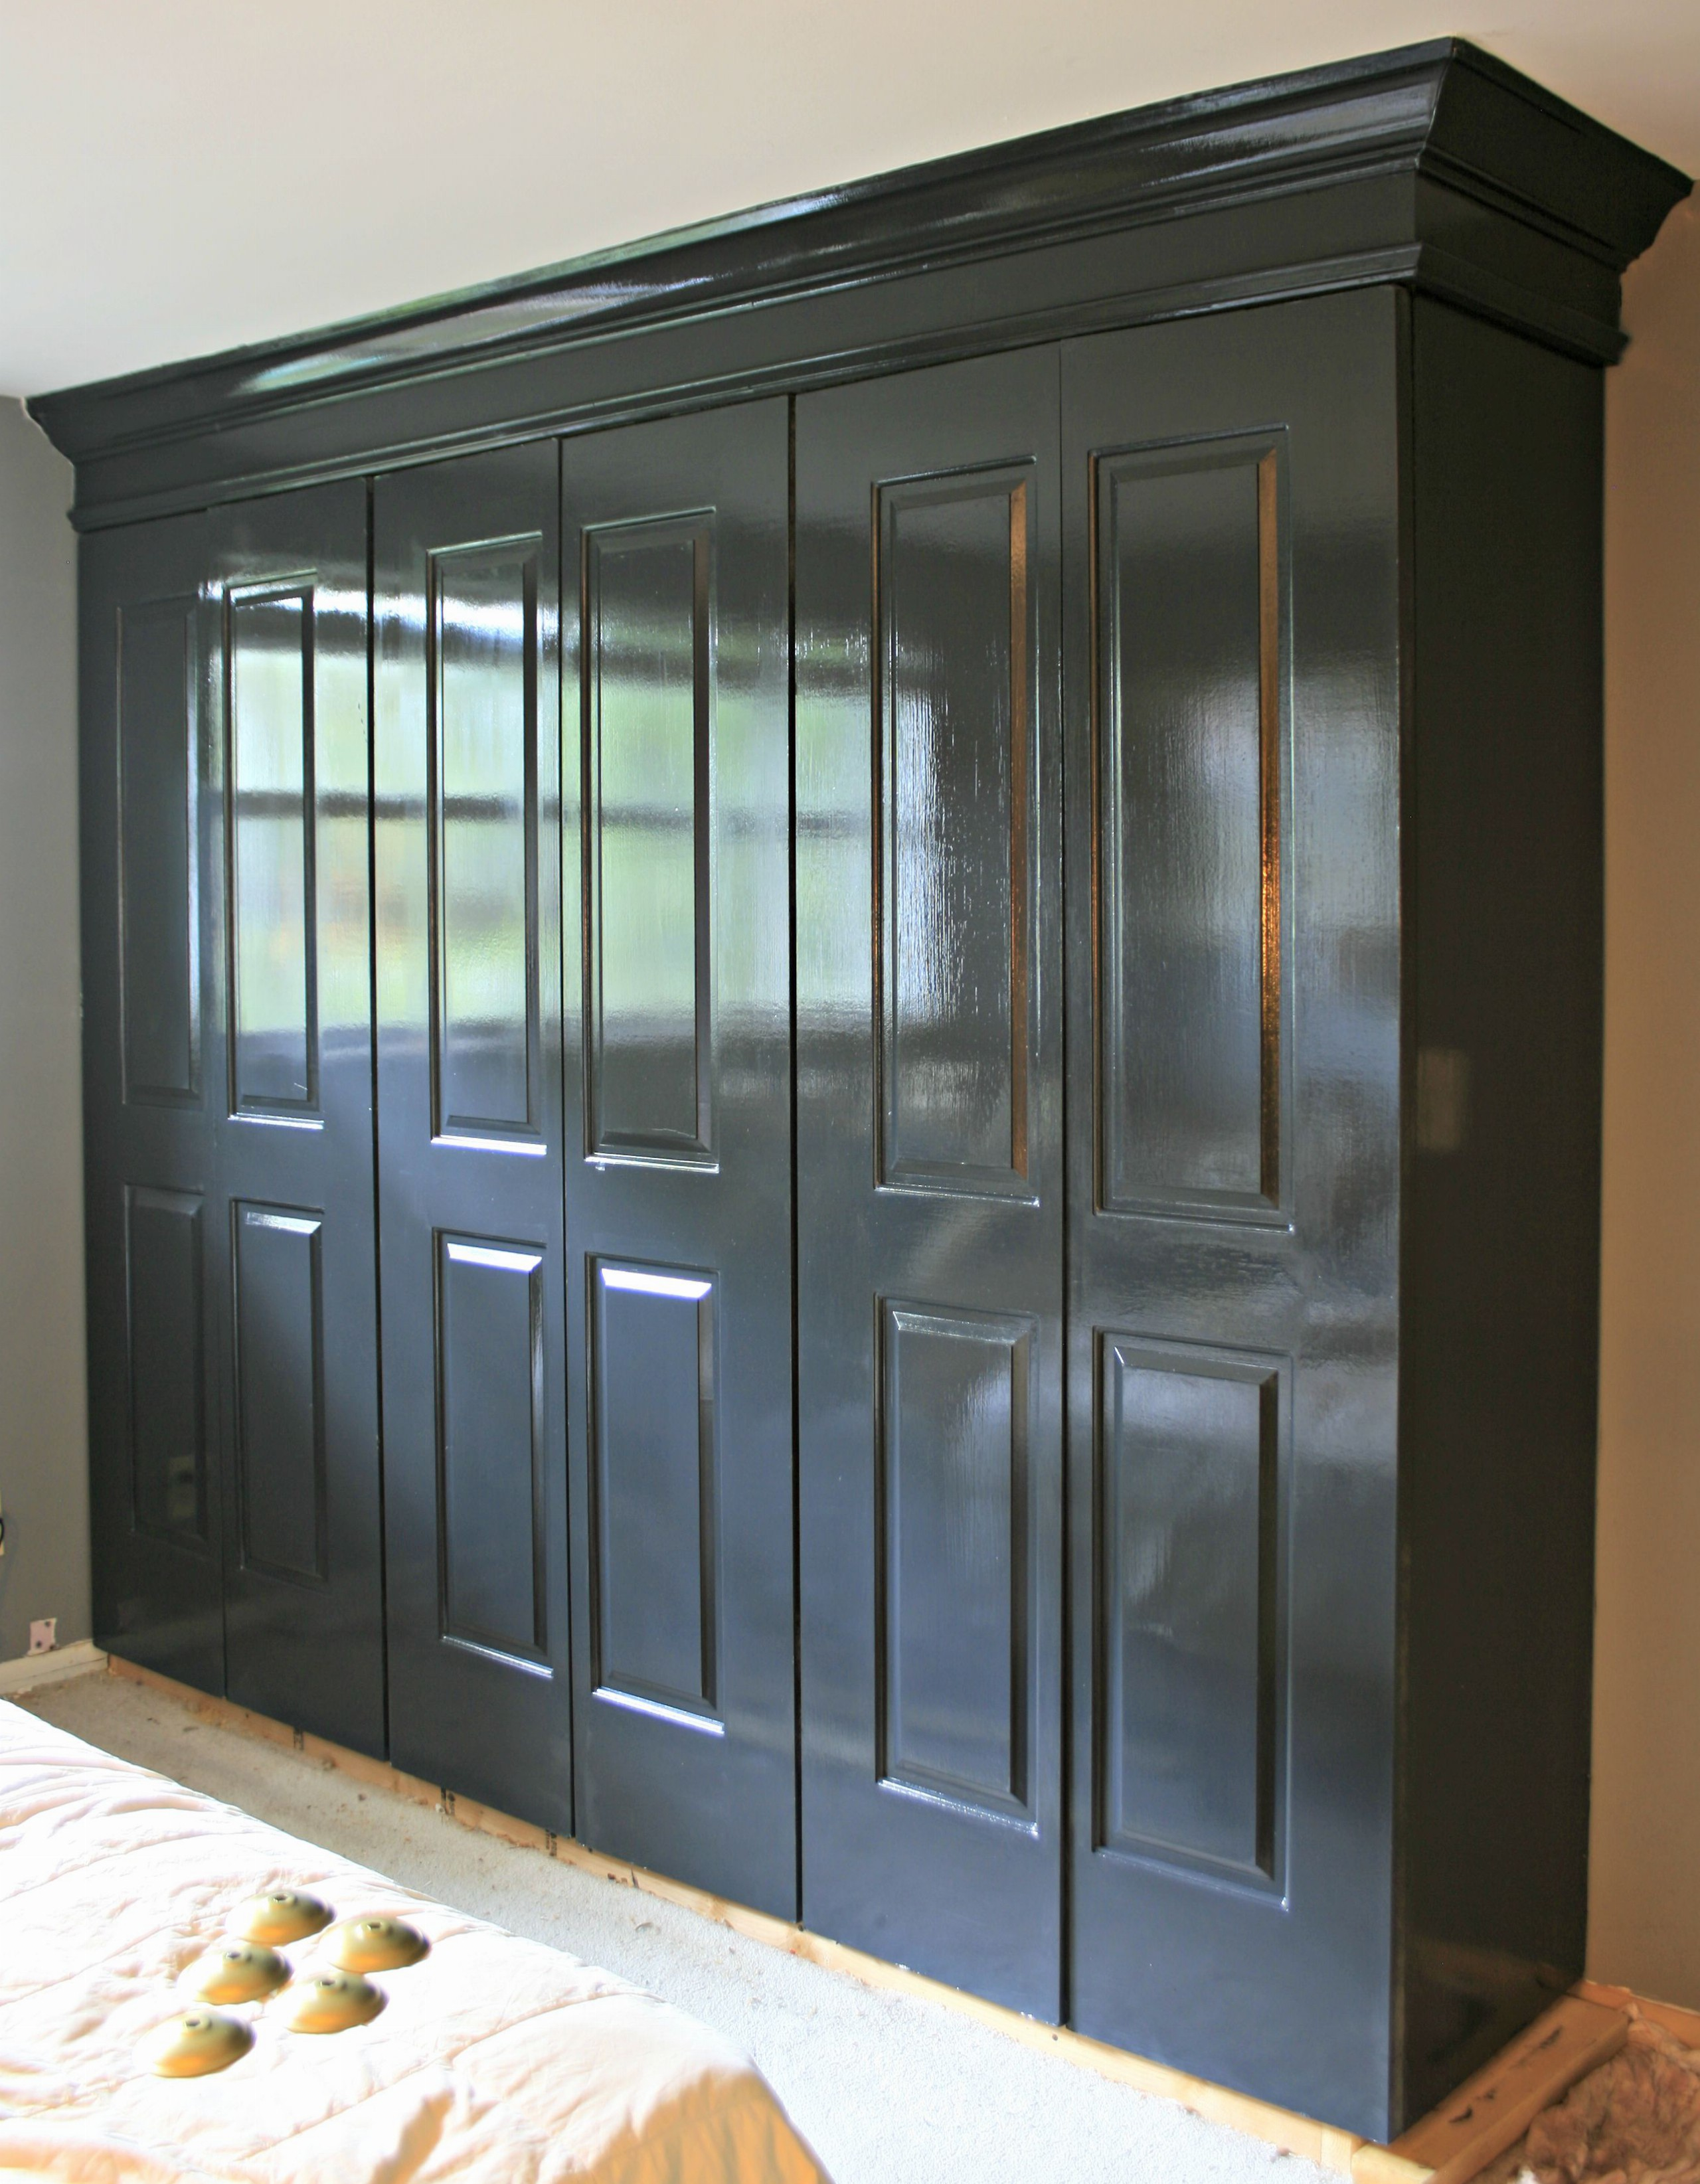 Delicieux ... Closet Cabinet In High Gloss Oil Paint